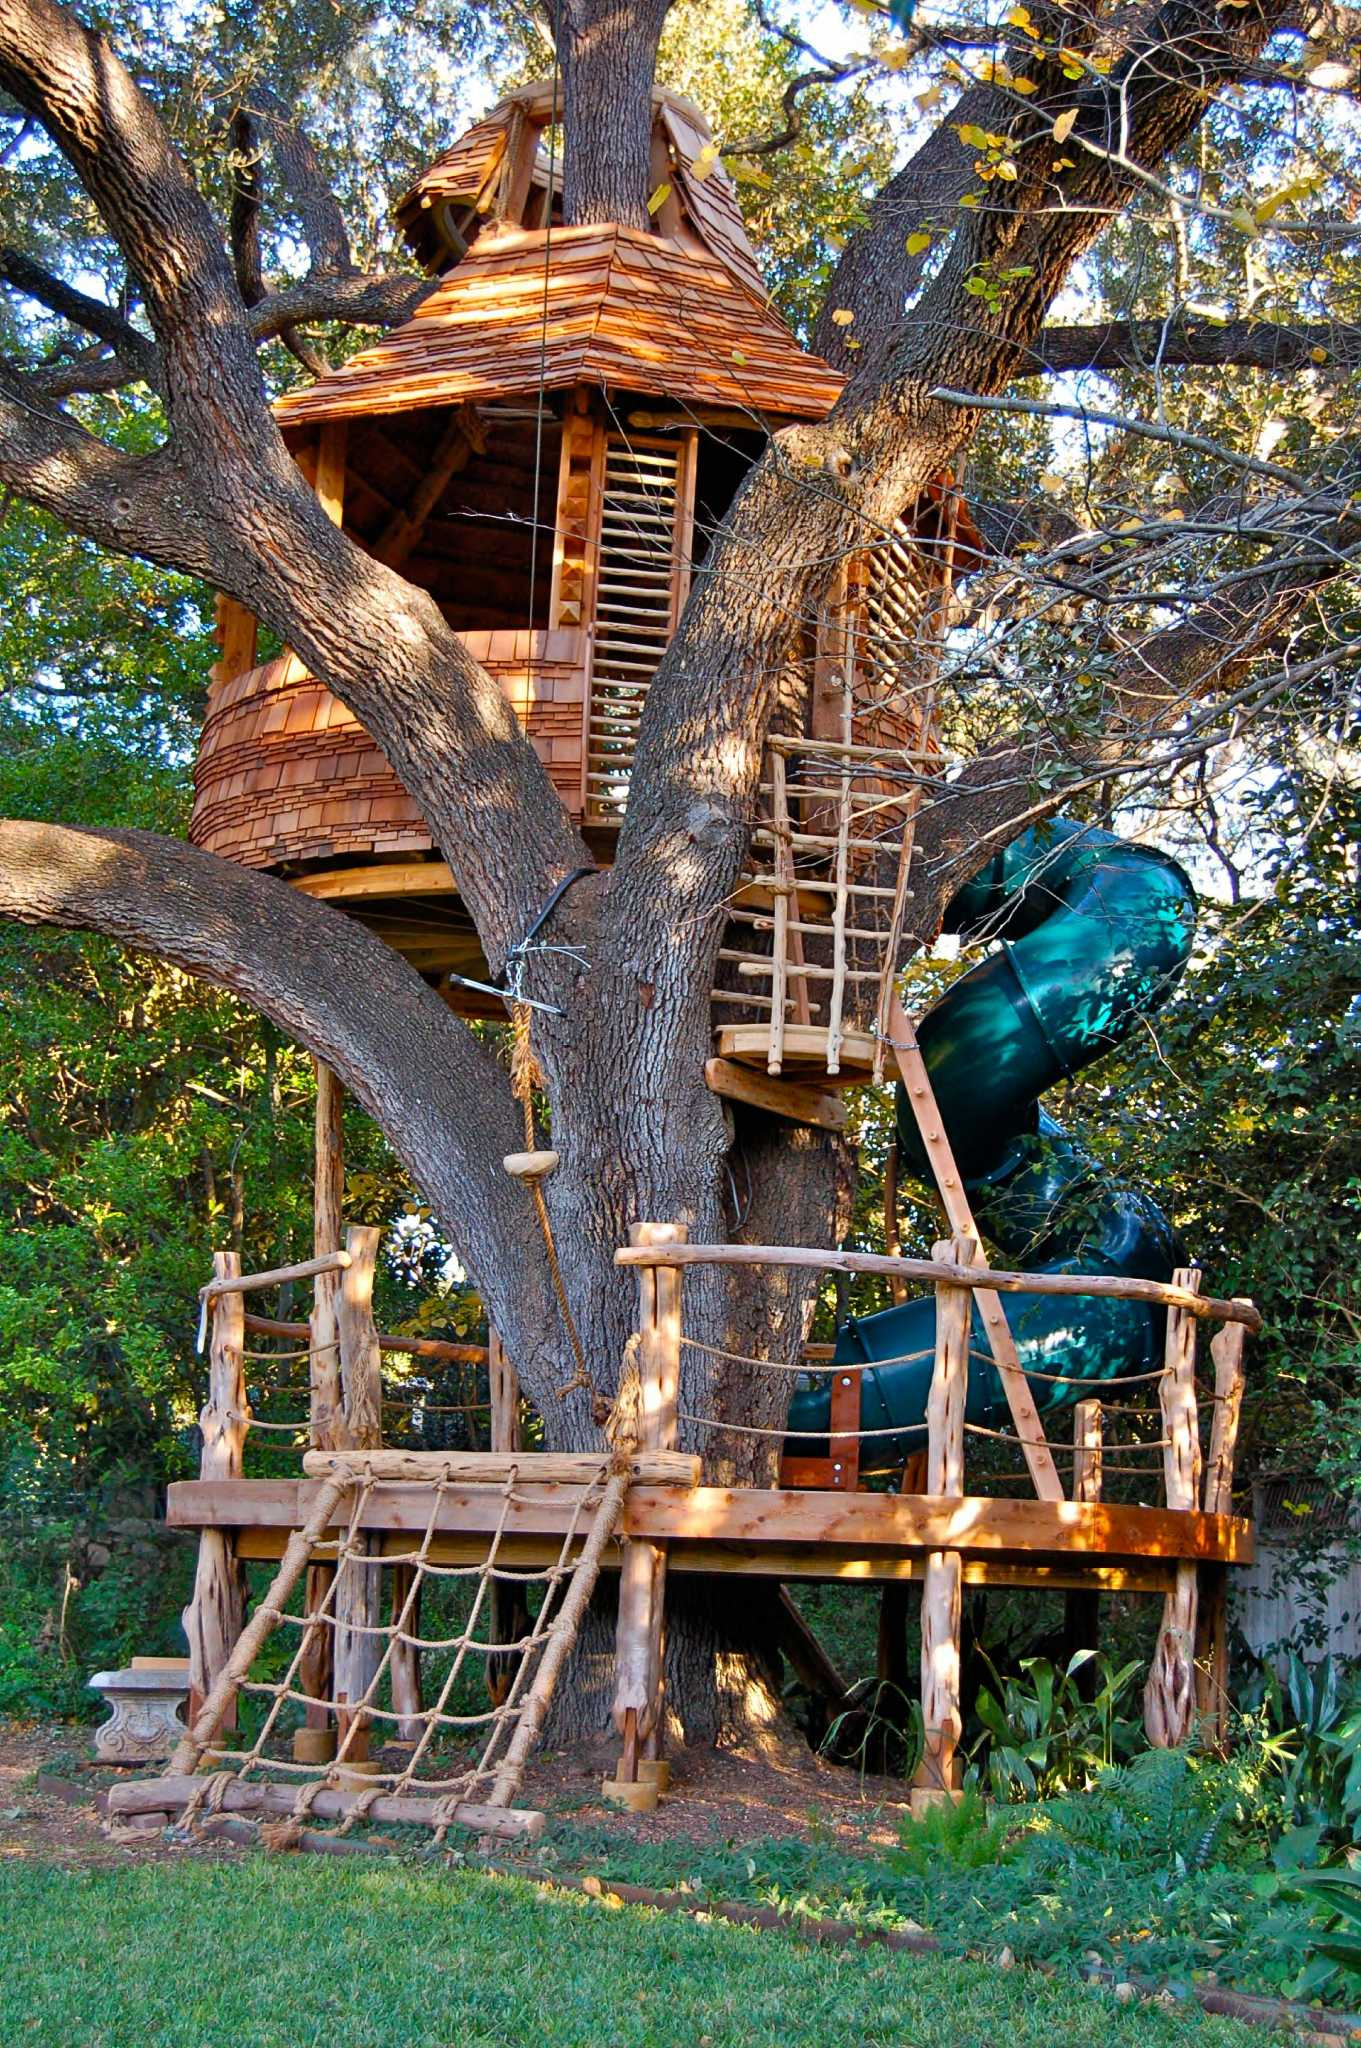 2 sa treehouses to be on treehouse masters san antonio express news